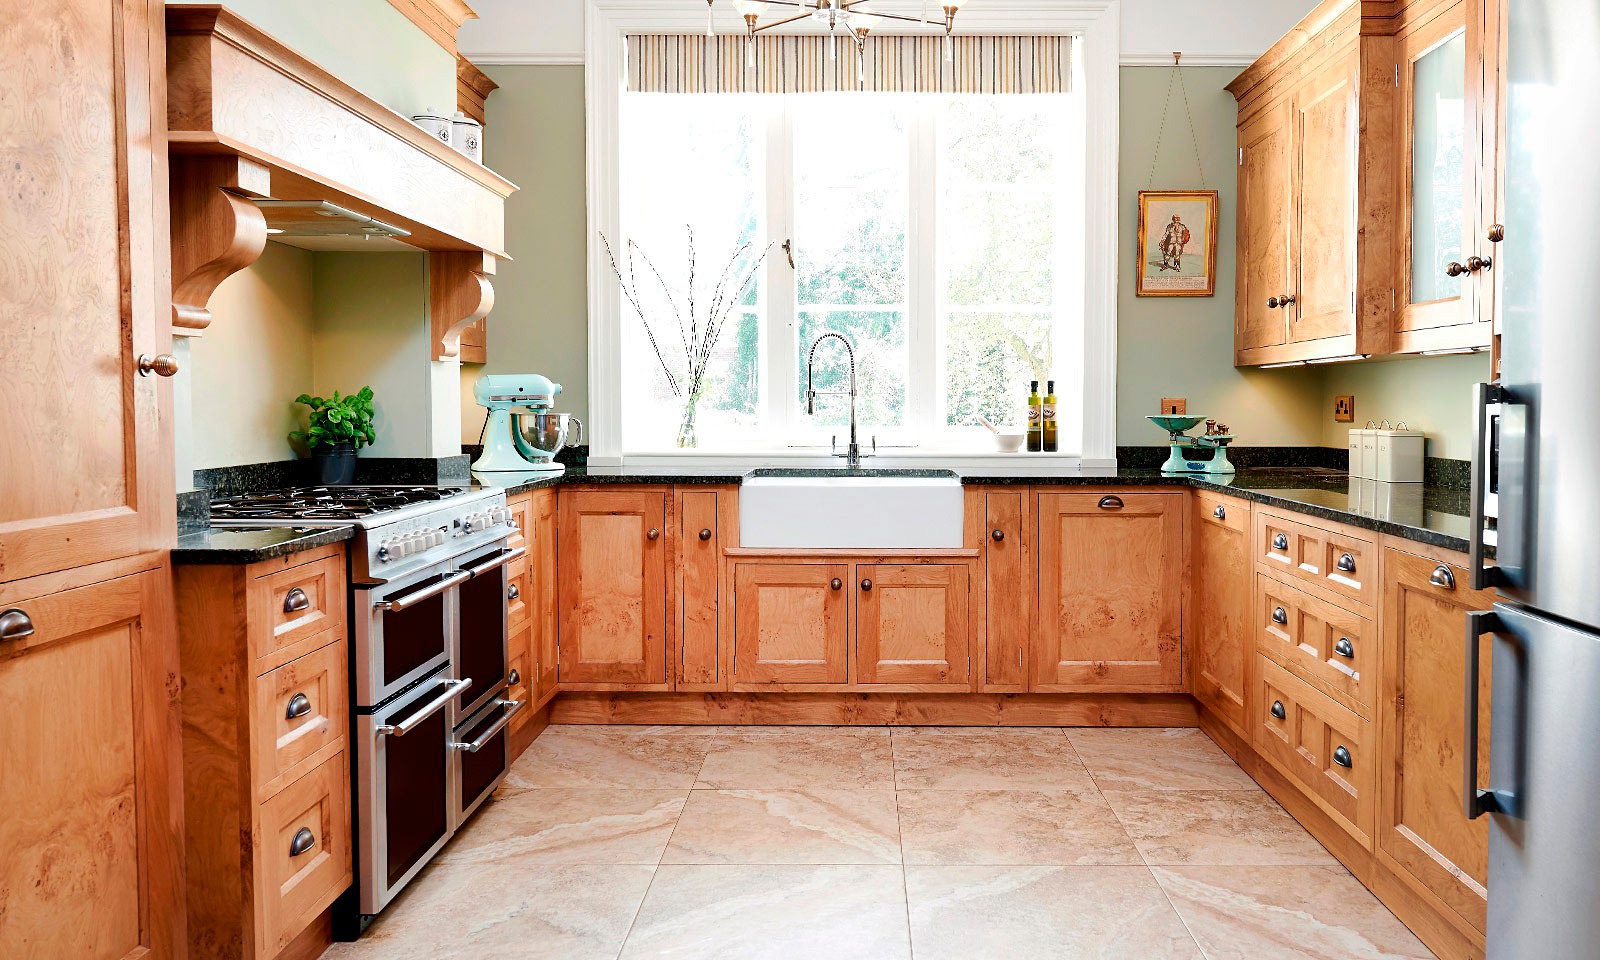 Pantiles. A classic handmade, hand-painted, Shaker style kitchen, installed in a grade II listed building. Built using solid European oak and finished in cluster oak veneer with granite worktops. Another hand-crafted kitchen manufactured by the skilled cabinet makers at Mounts Hill Woodcraft.